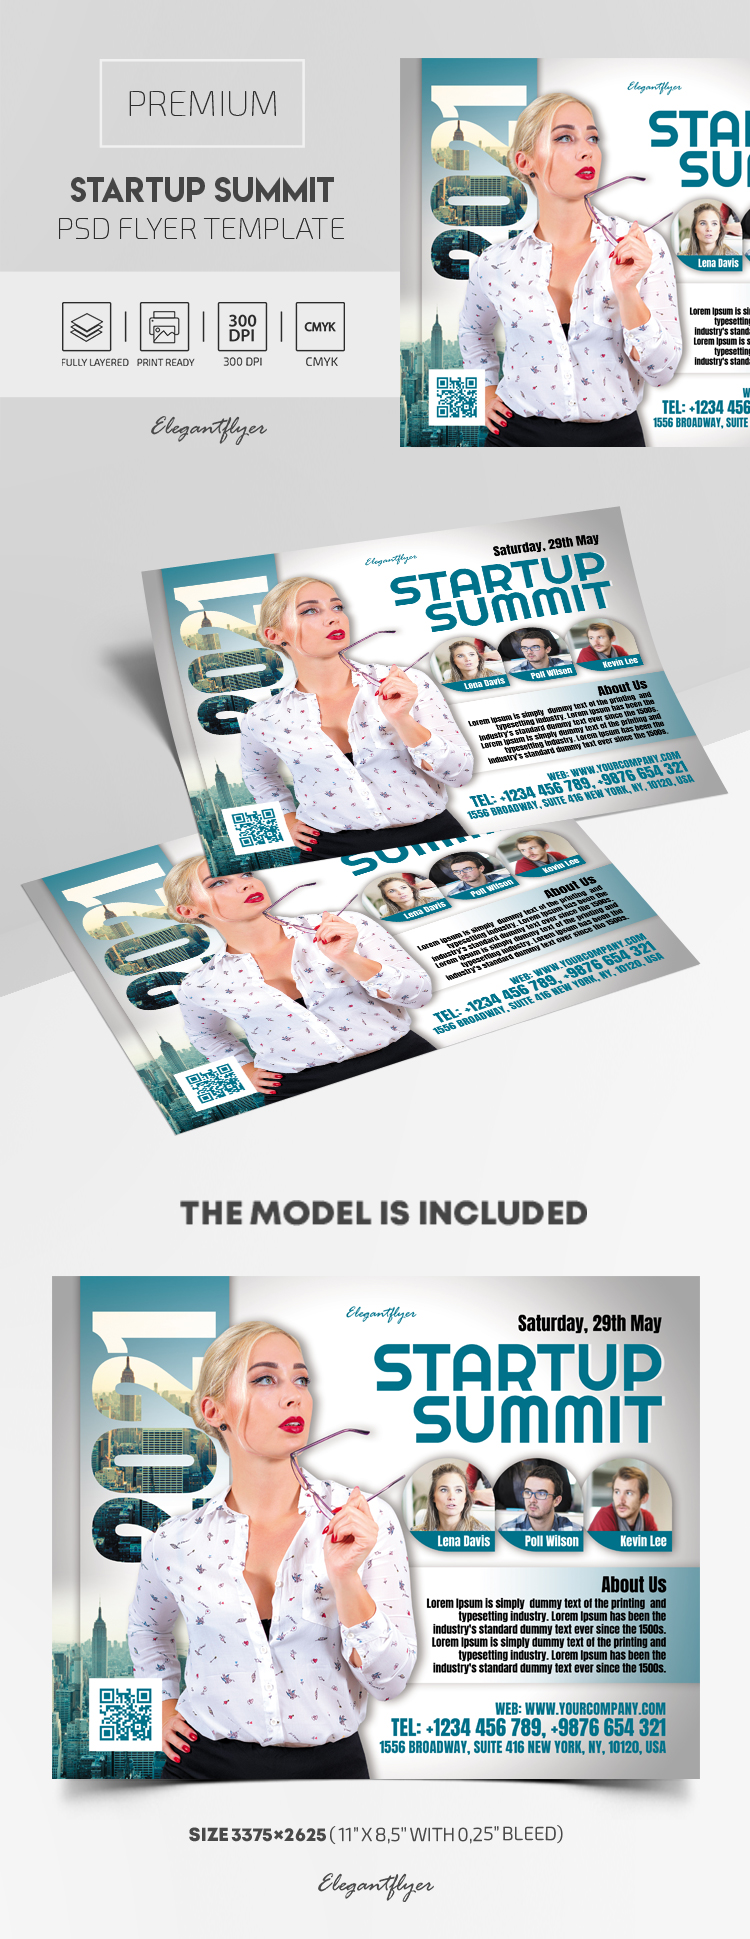 Startup Summit – Premium PSD Flyer Template